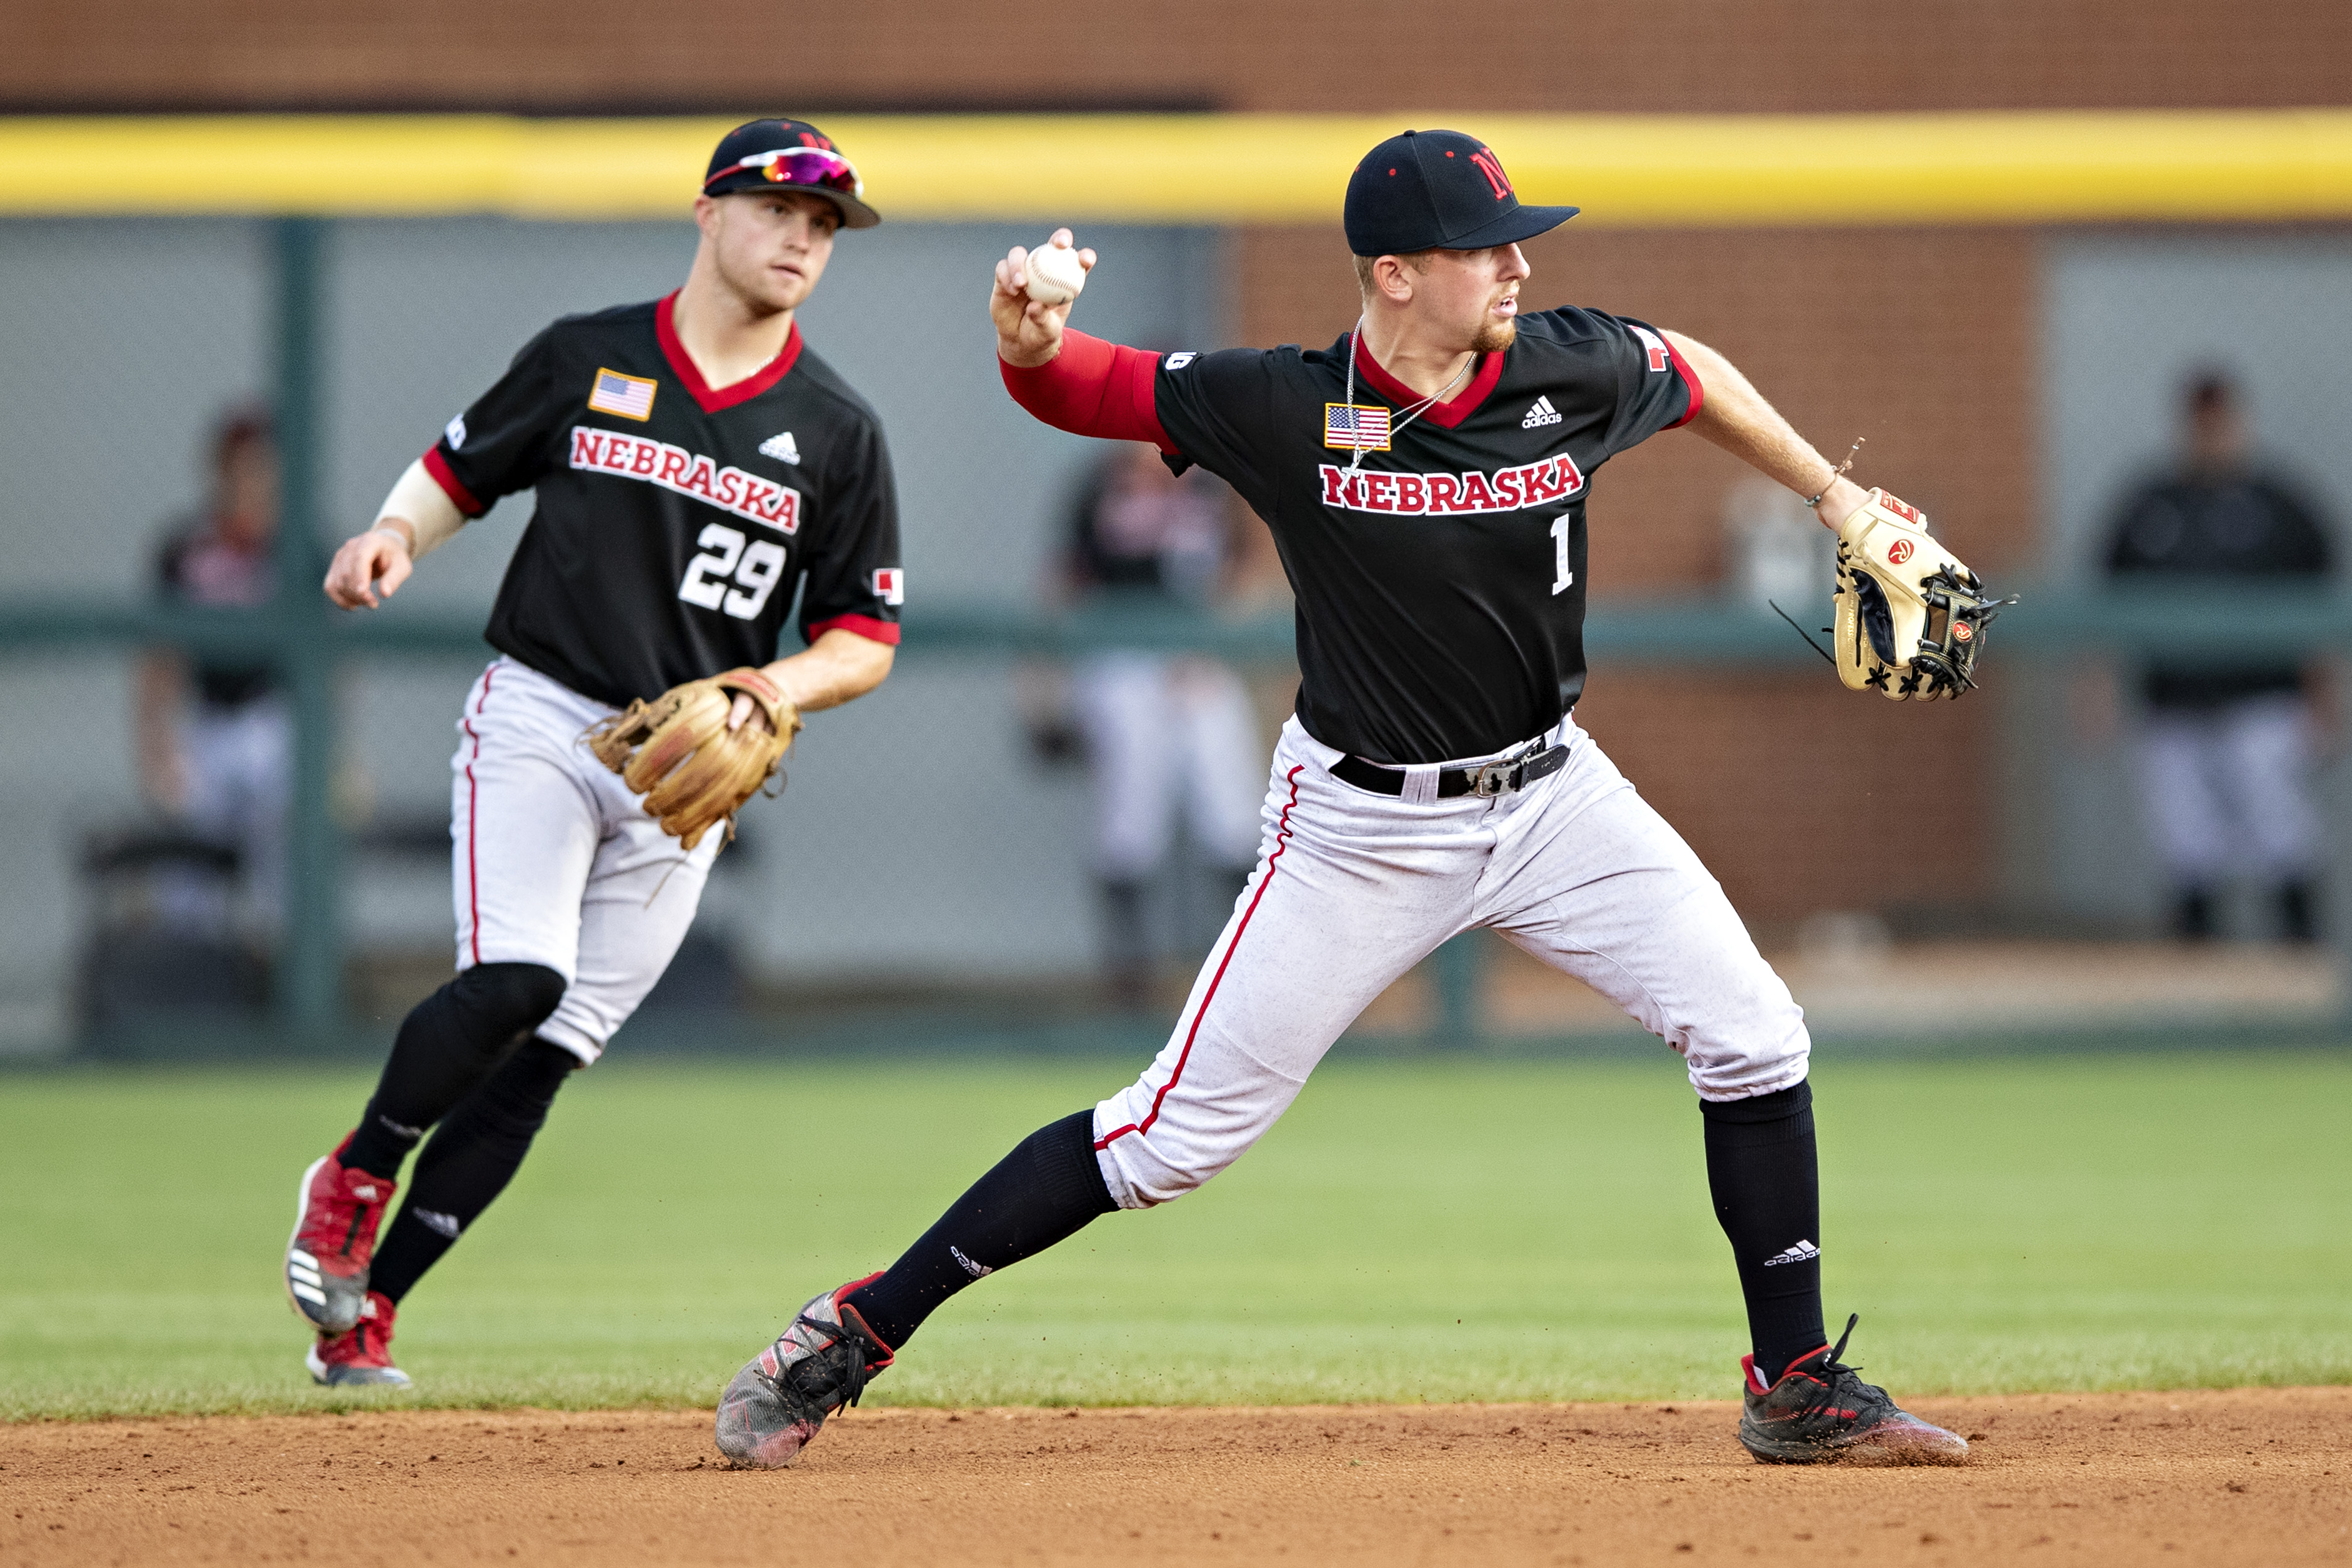 Spencer Schwellenbach of the Nebraska Cornhuskers throws out a runner at first base during a game against the Arkansas Razorbacks at the NCAA Fayetteville Regional at Baum-Walker Stadium at George Cole Field on June 7, 2021 in Fayetteville, Arkansas.